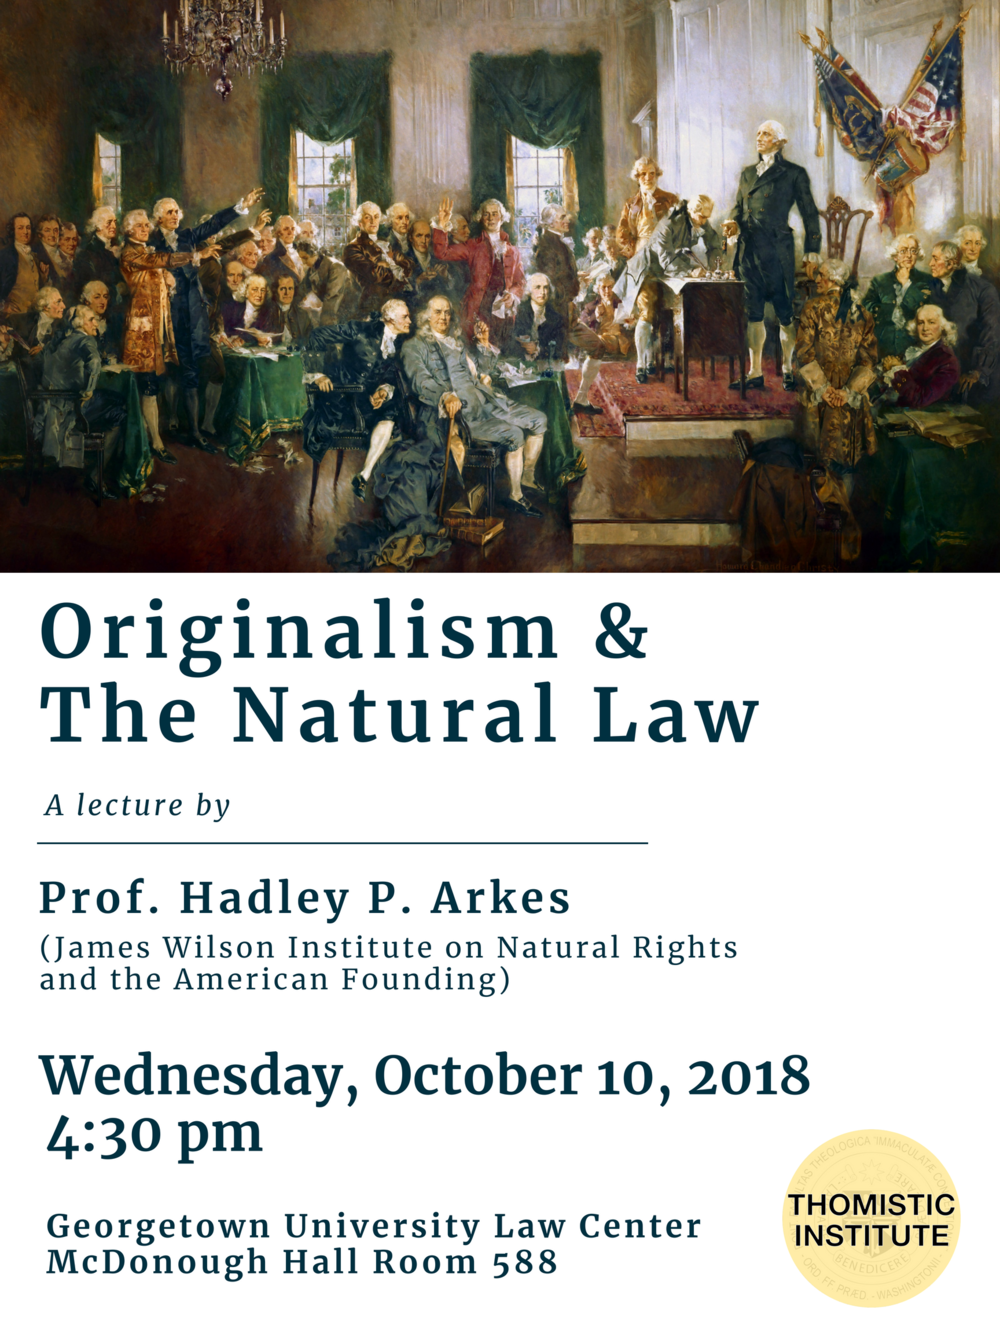 10.10.18 Hadley Arkes at Georgetown Law - Originalism and the Natural Law.png